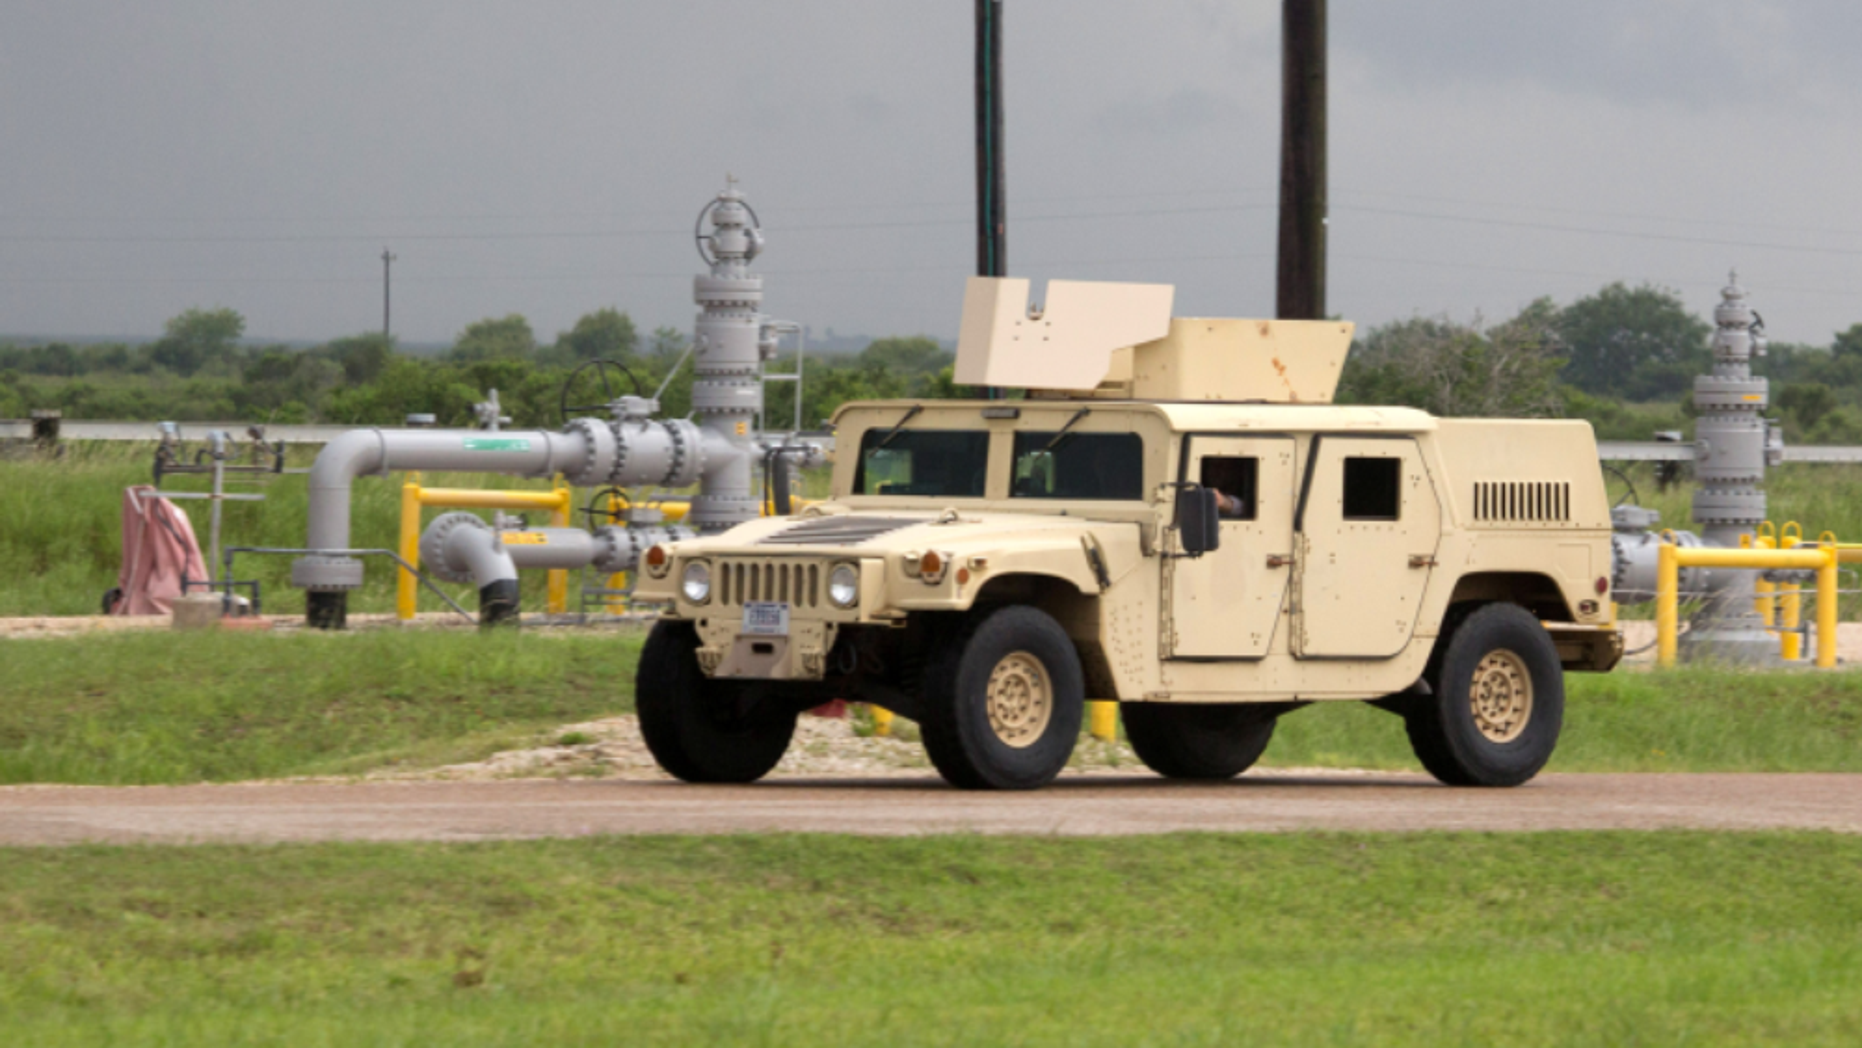 A U.S. Army soldier has been charged after three Humvees were destroyed.